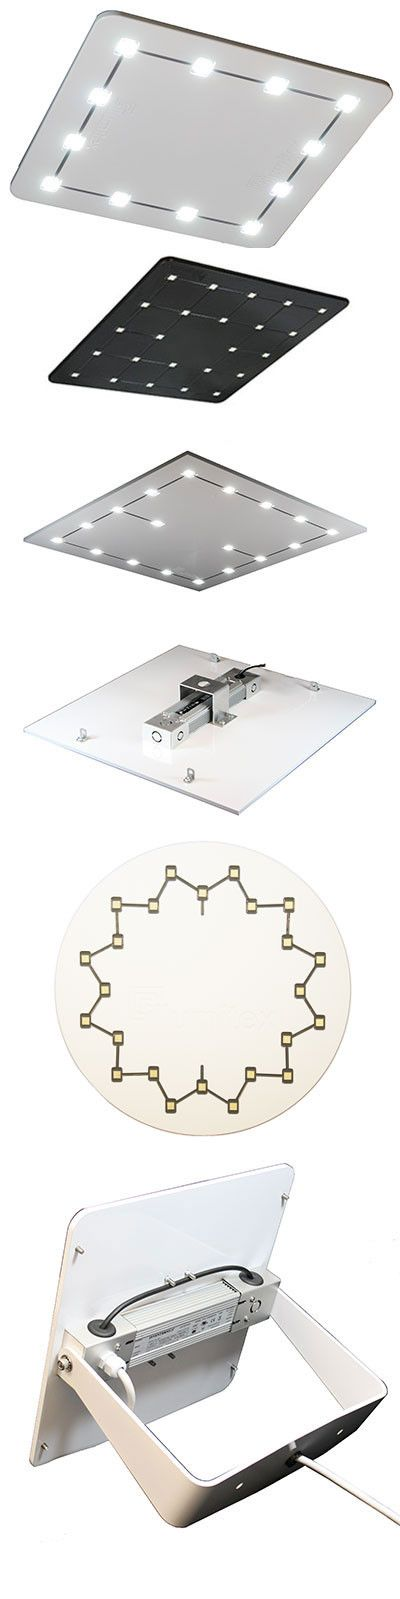 The Stratus Square High Bay LED light is a unique heavy-plate high bay LED light with integrated circuitry and recessed LEDs